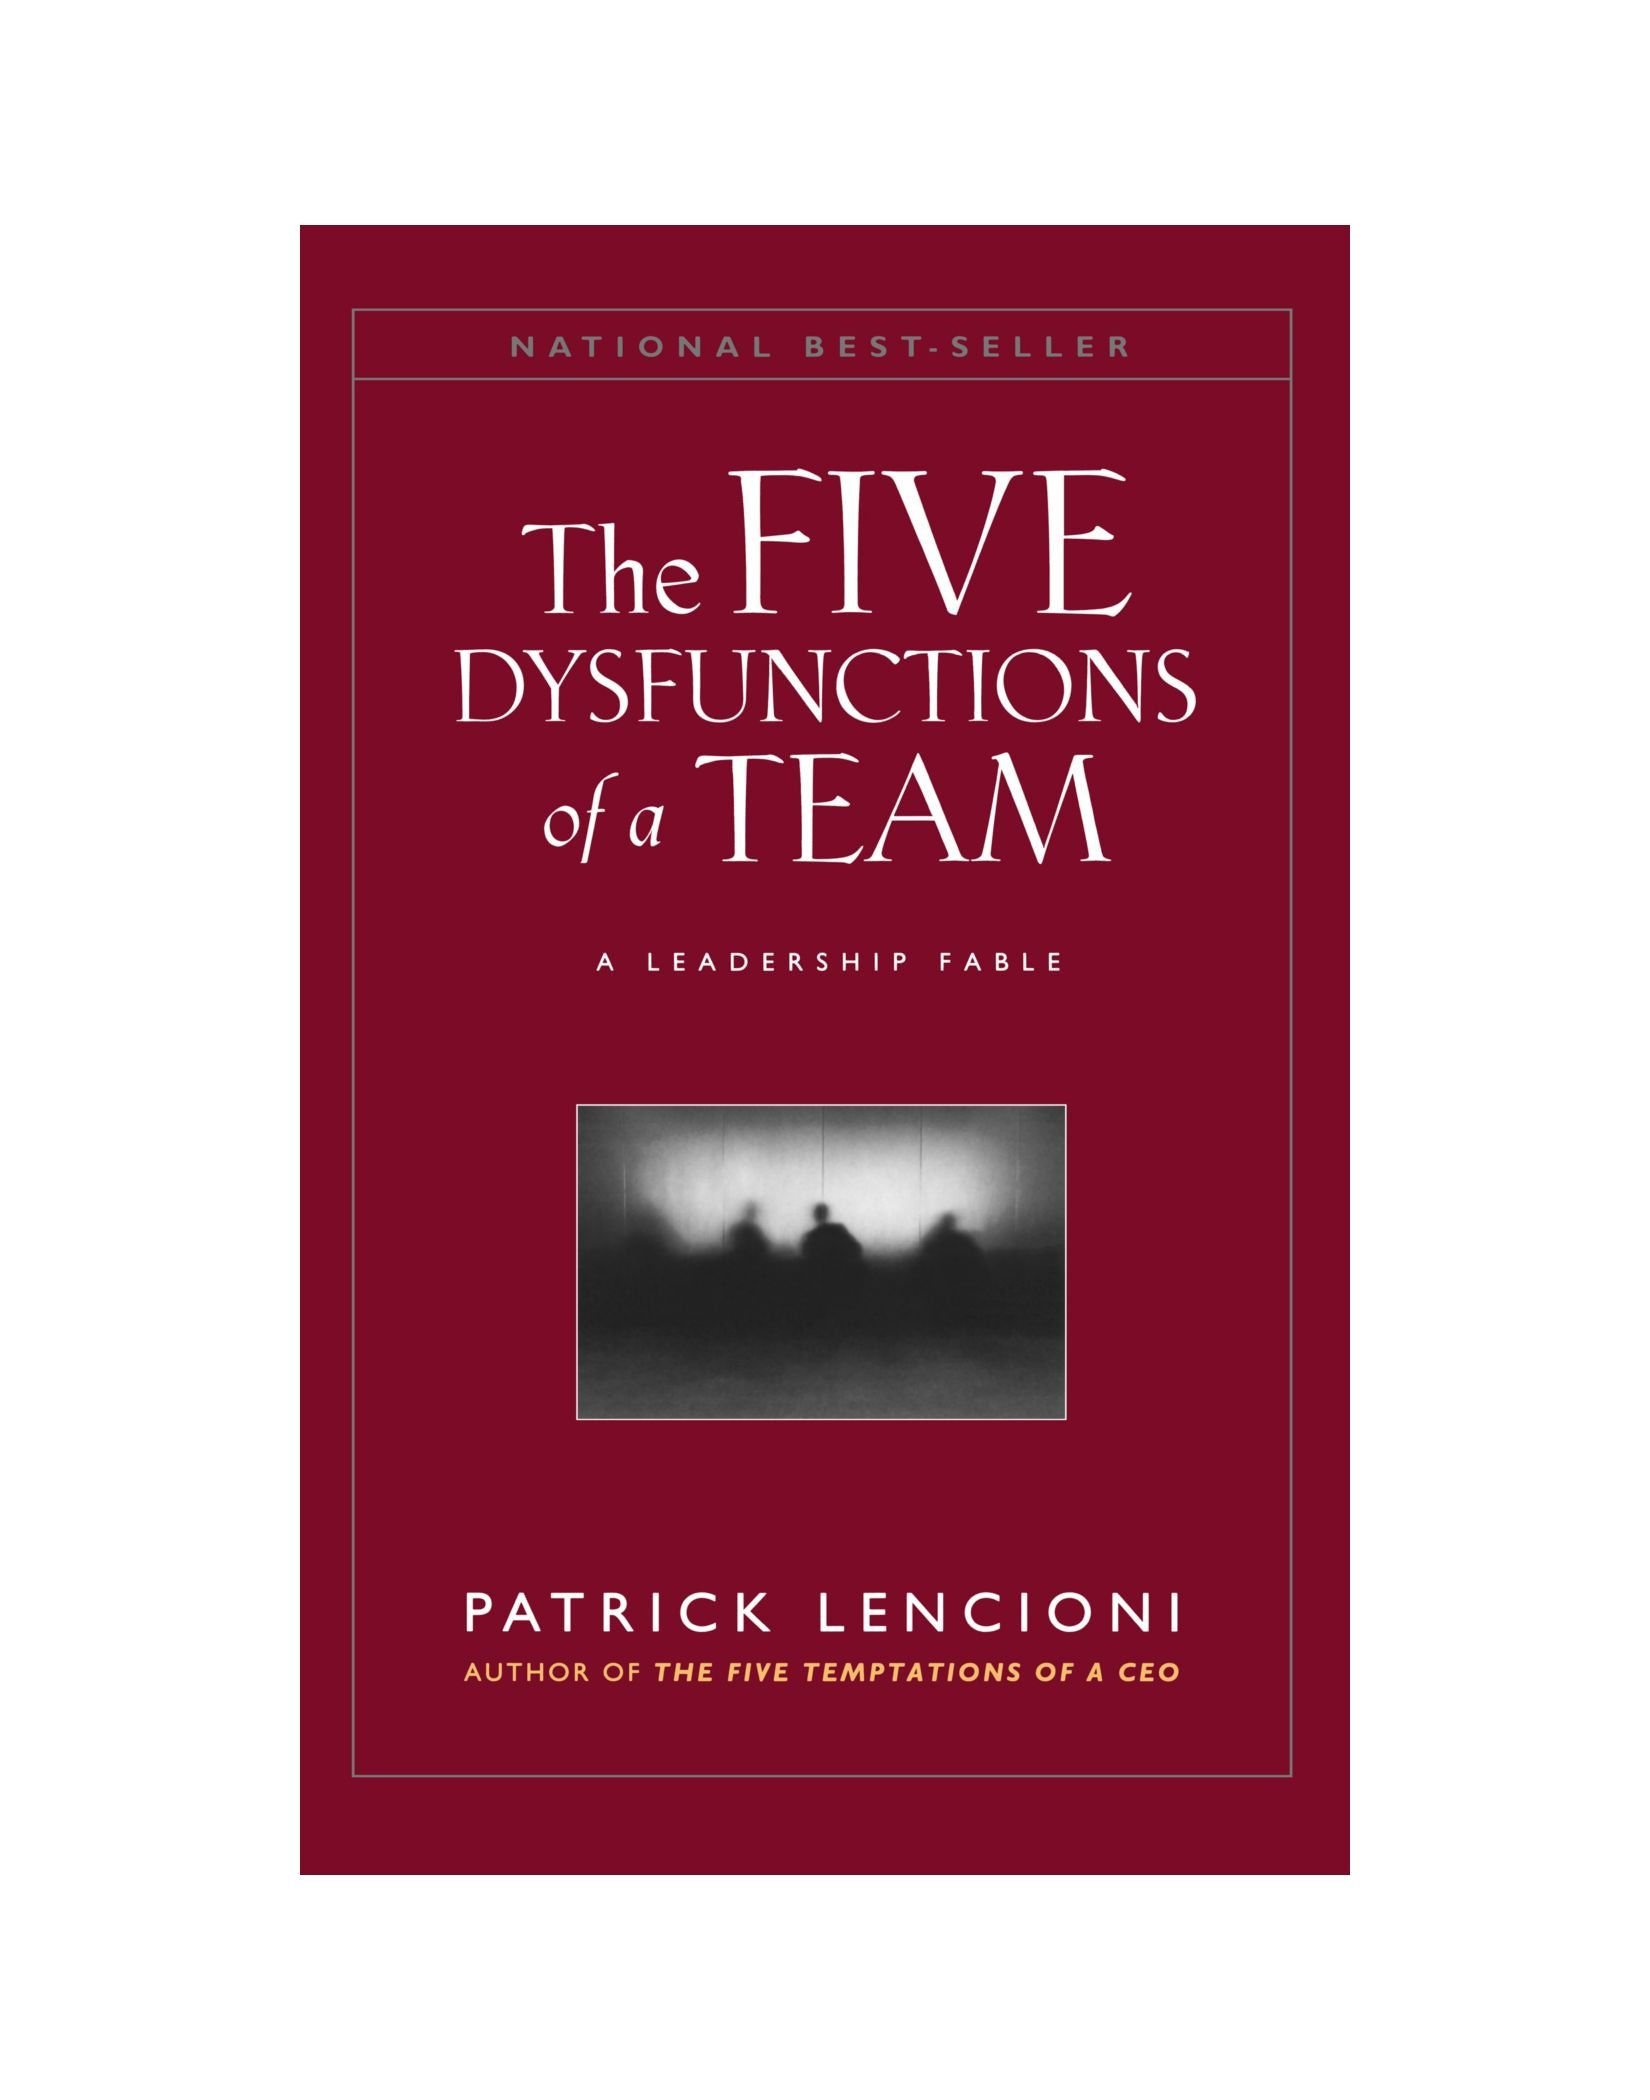 5 dysfunctions of a team book pdf